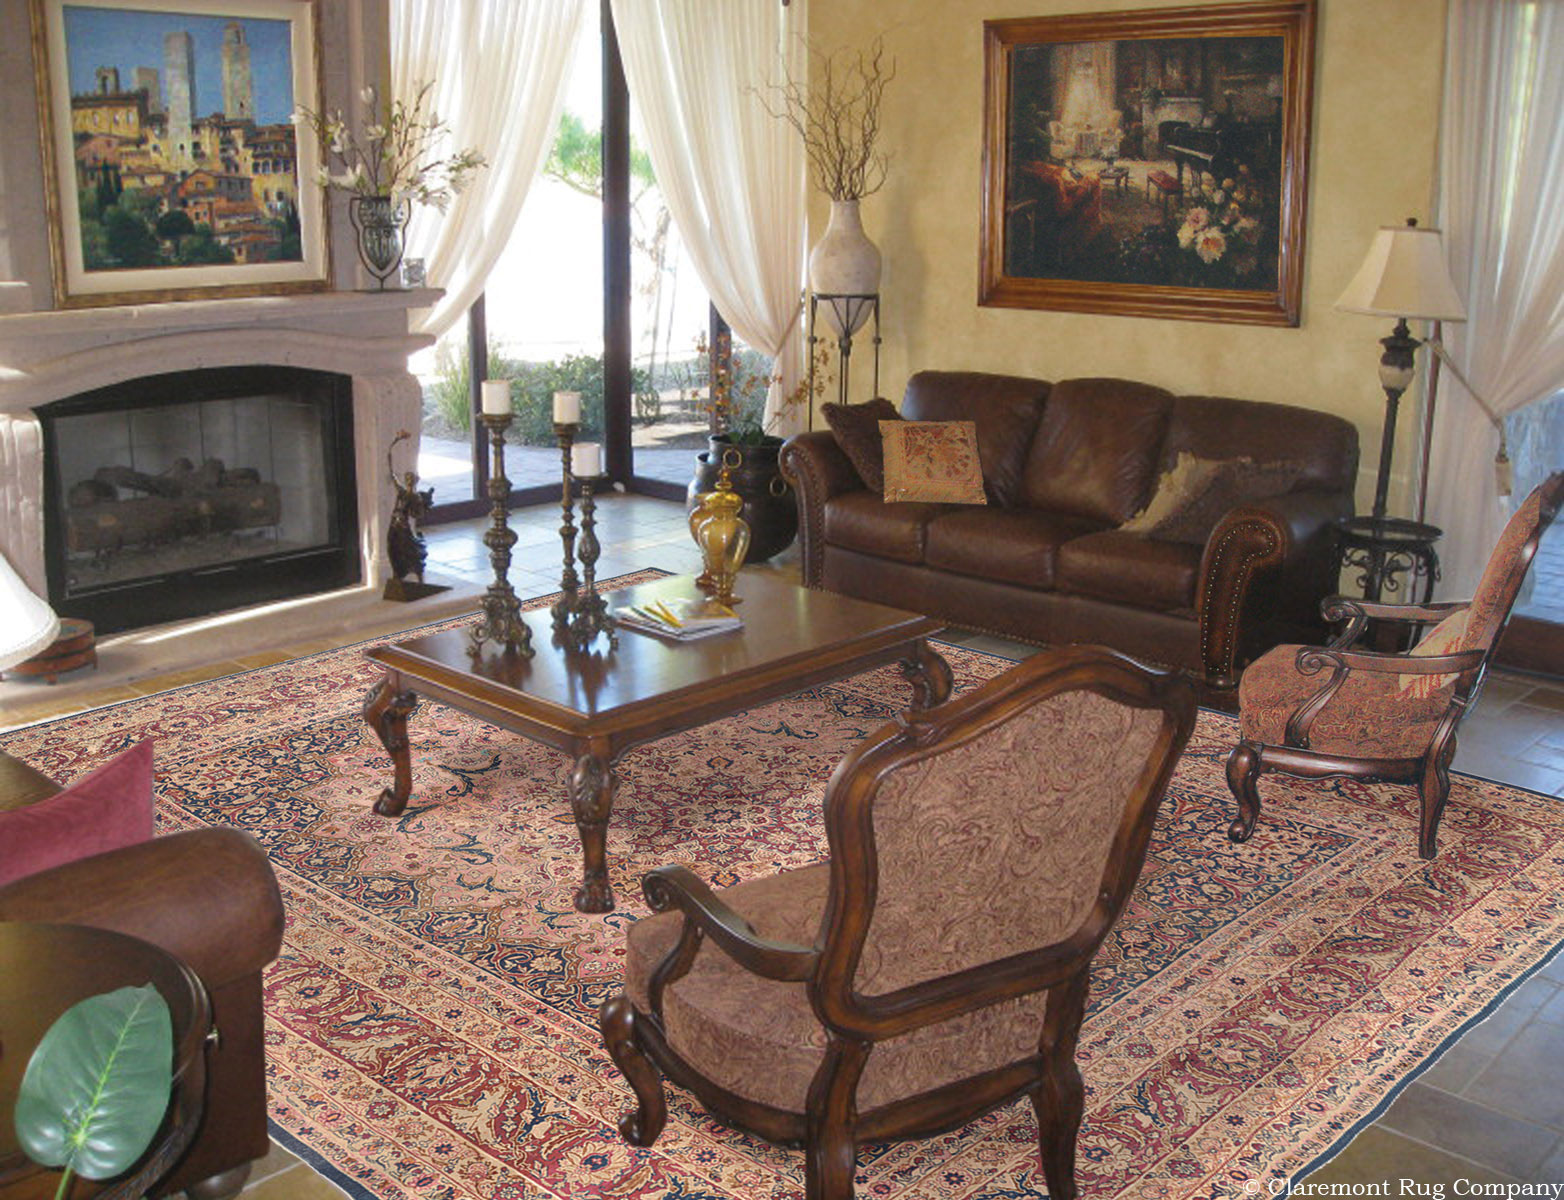 traditional living rooms with oriental rugs small room interior design images antique laver kirman rug creates calm in sitting a 150 year old persian carpet adds timeless romance to this elegant